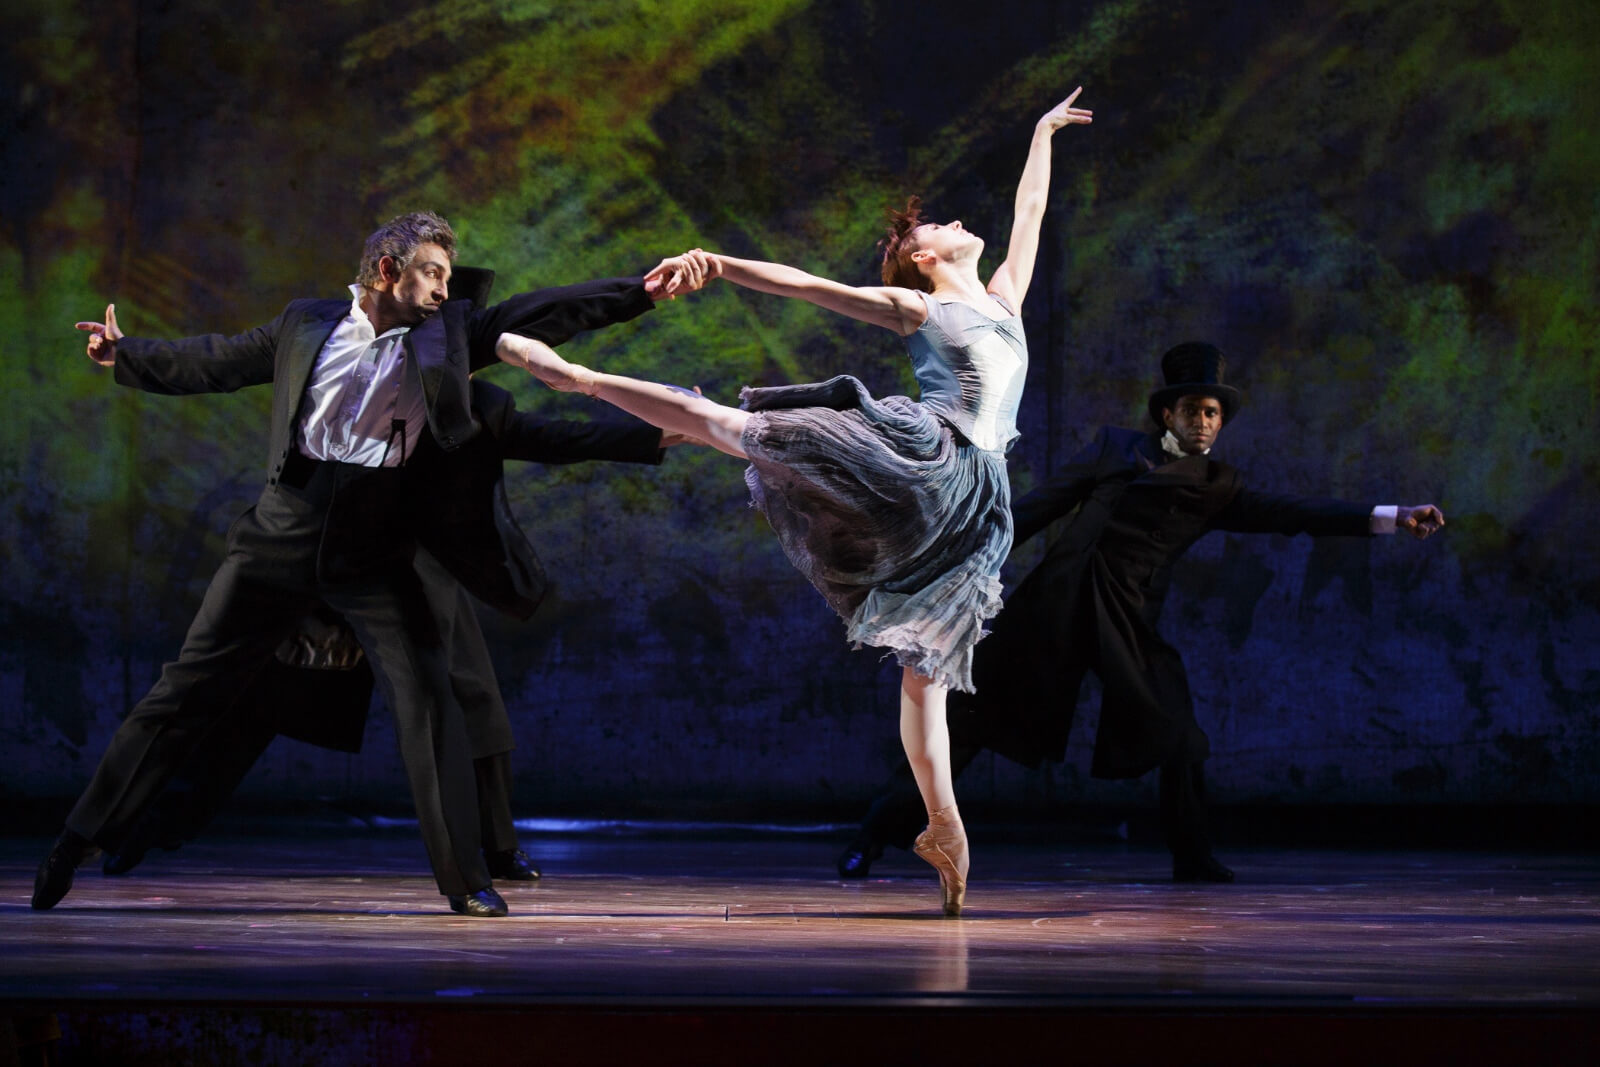 Marie in a powder blue ballet dress and beige shoes, doing a show-stopping arabesque with a partner in a suit.